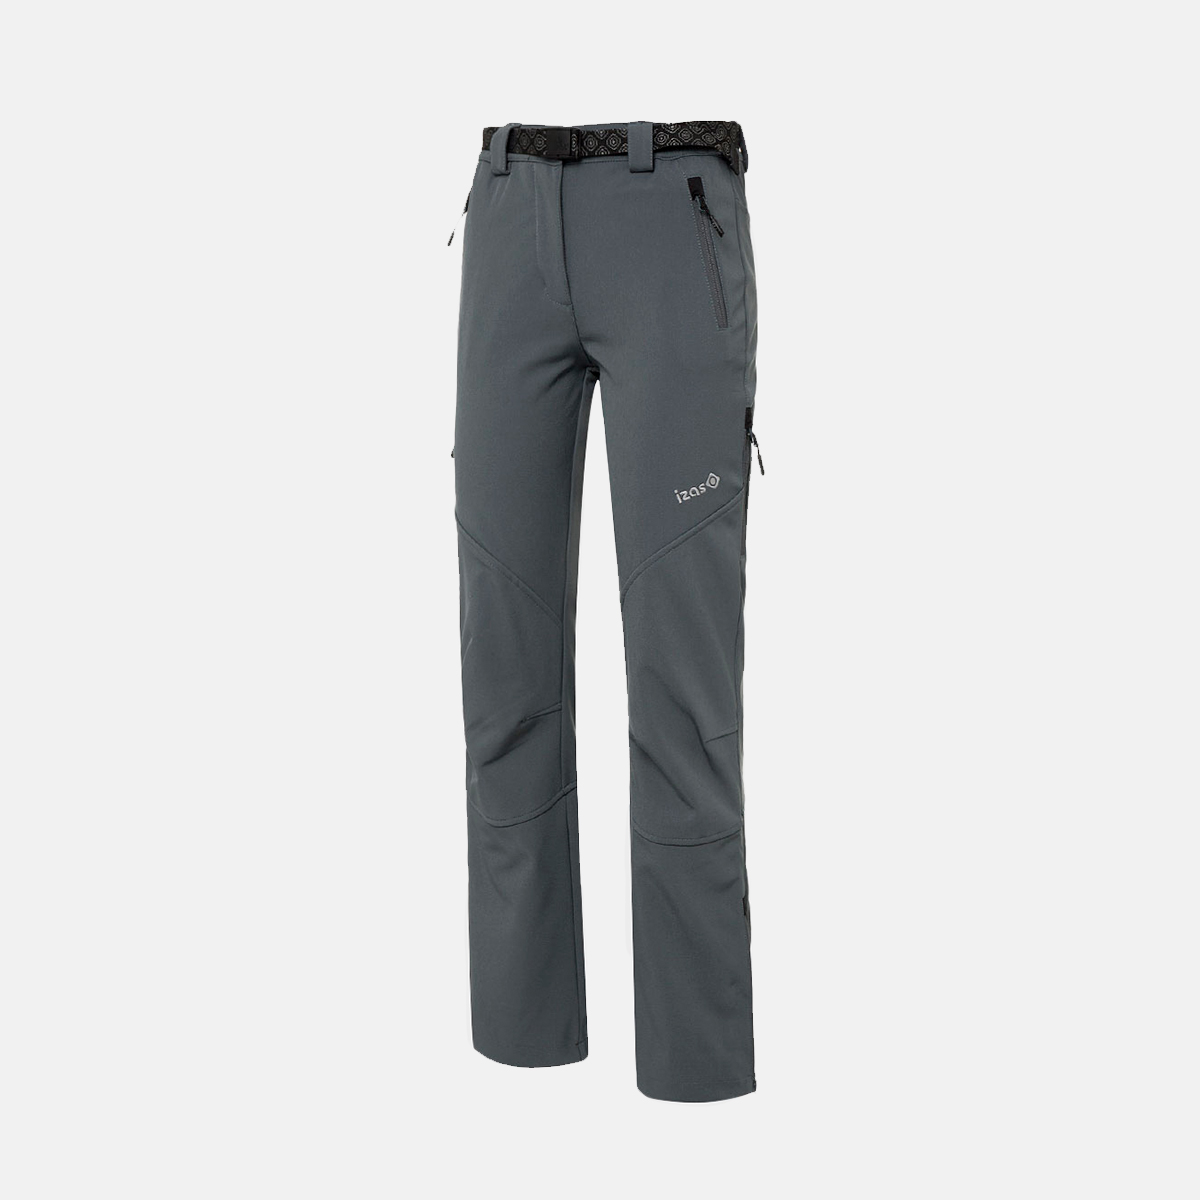 WOMAN'S ONICA SOFTSHELL PANT GREY